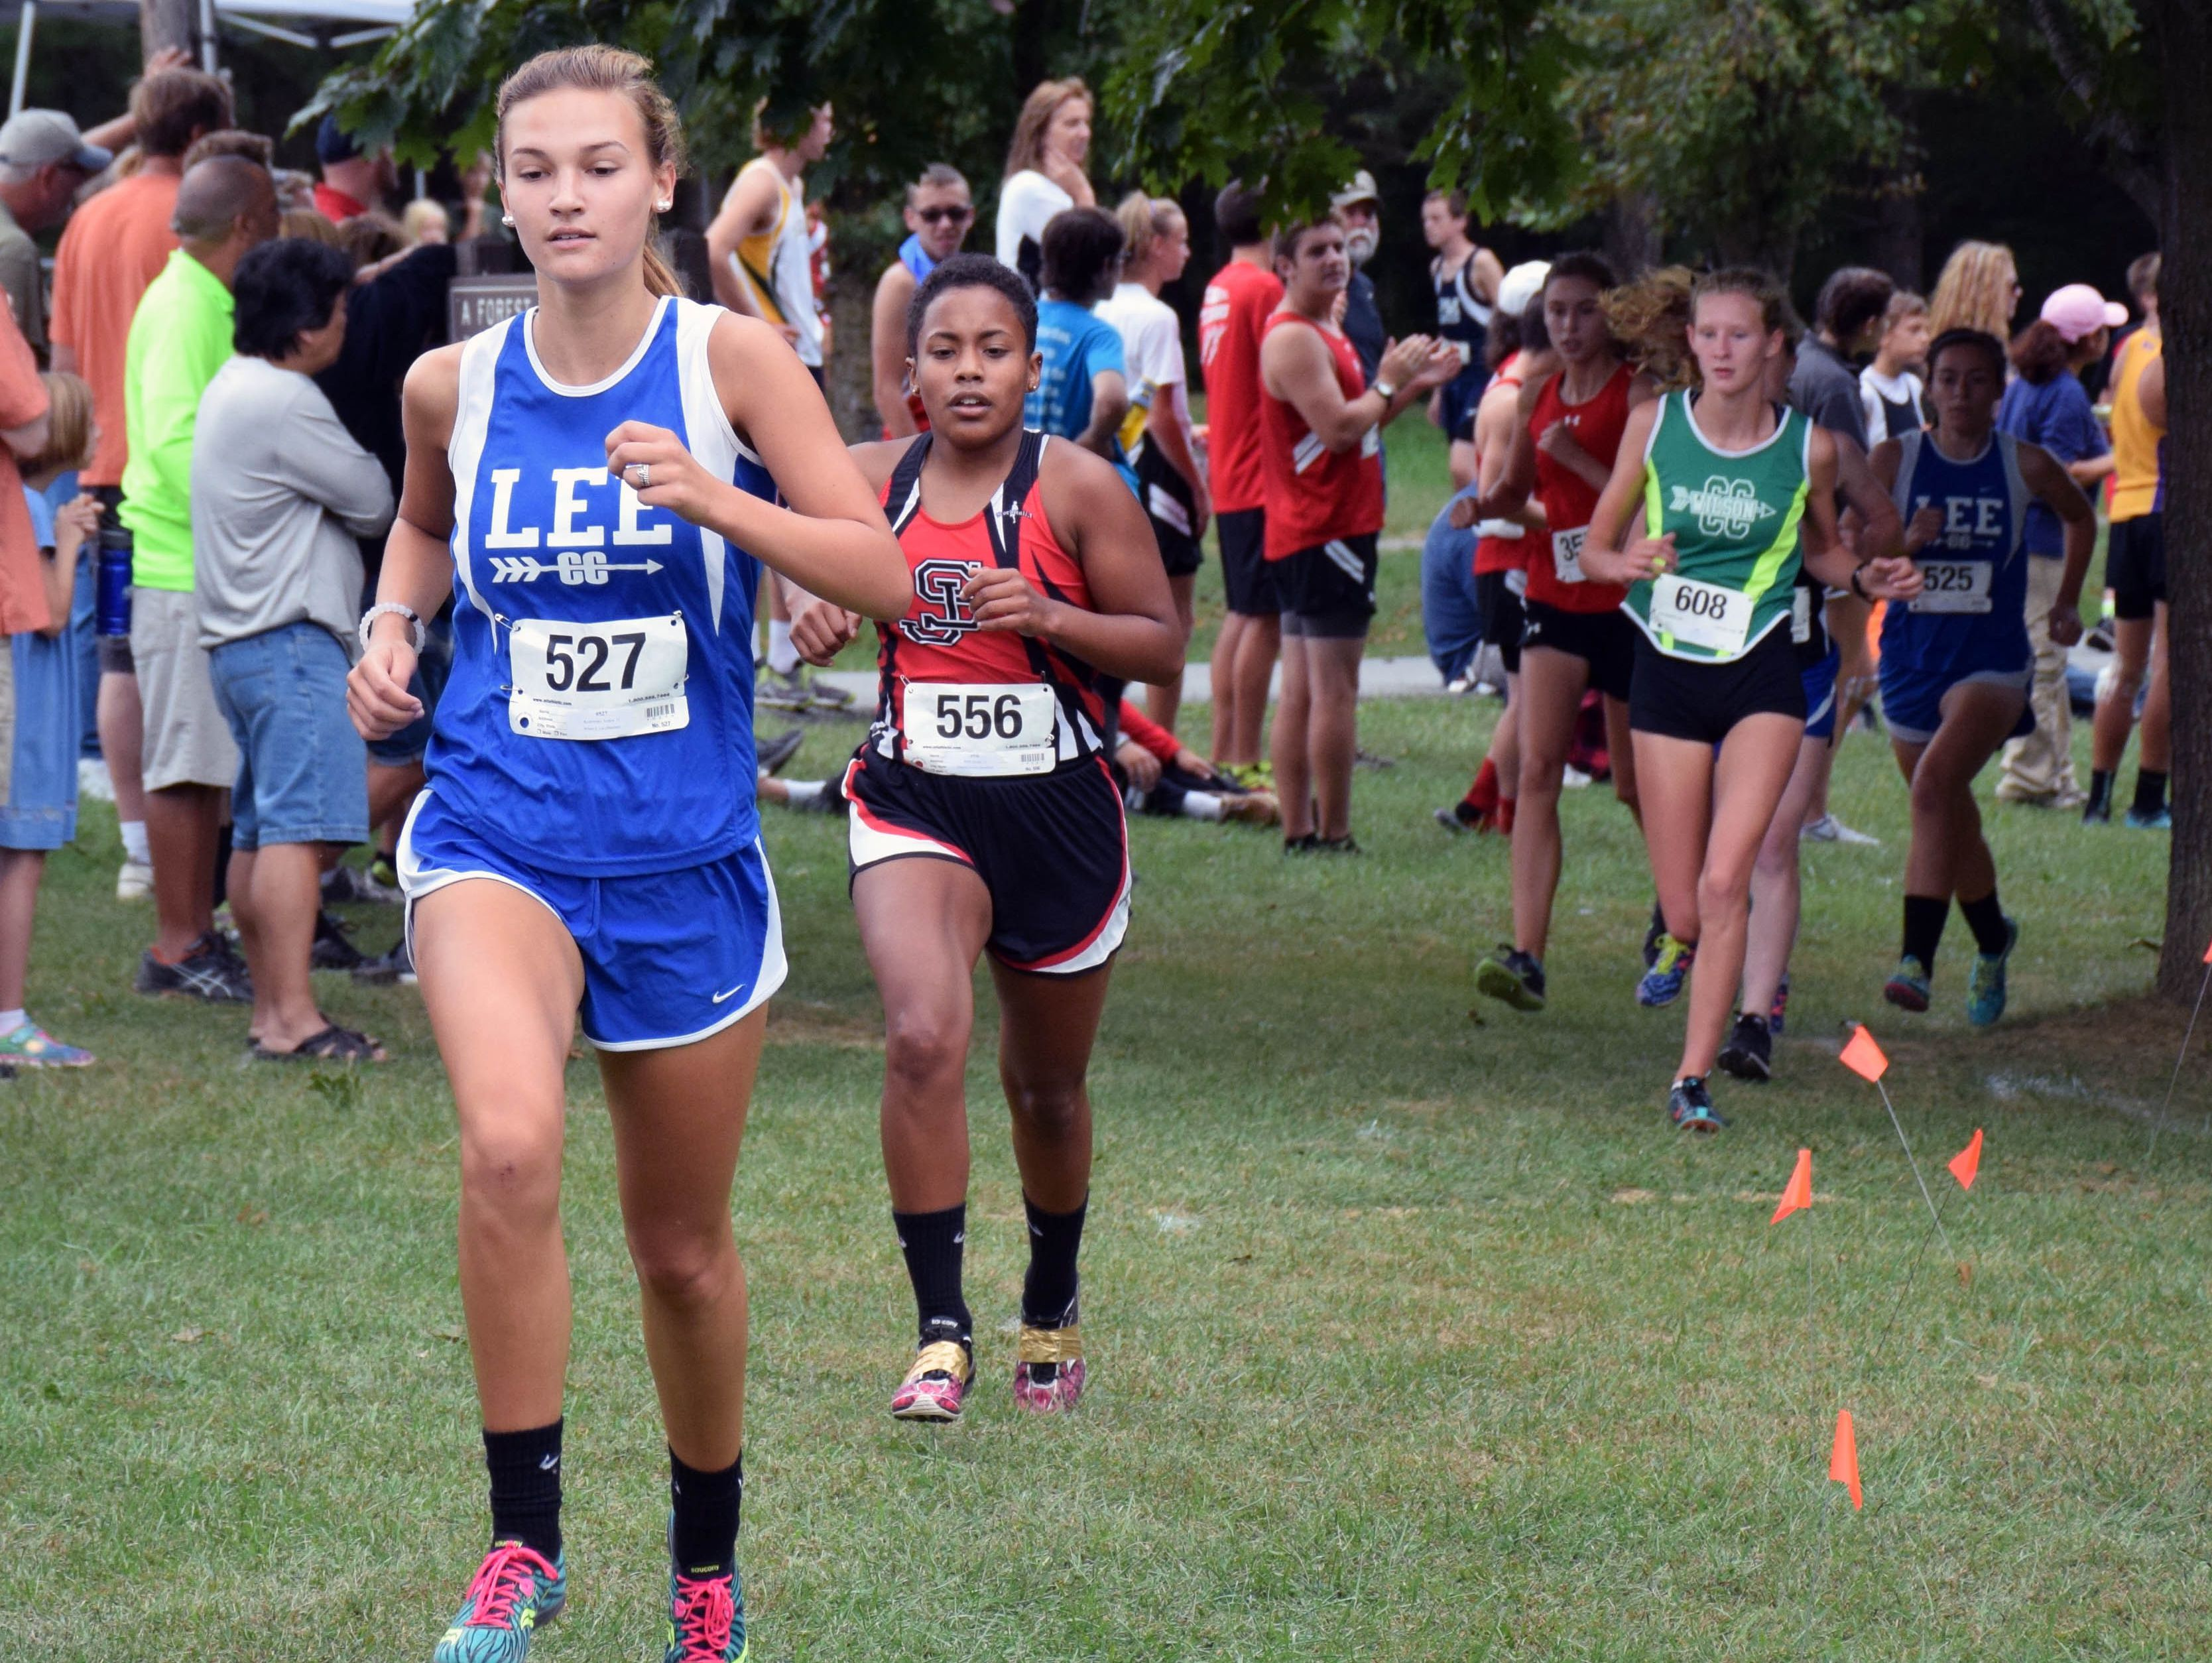 Robert E. Lee's Sophie Kozlowski stays ahead of Stonewall Jackson's Brandy Webb during the varsity girls race at the Augusta County Cross Country Invitational at Wilson Workforce and Rehabilitation Center in Fishersville, Va., on Saturday, Sept. 17, 2016.